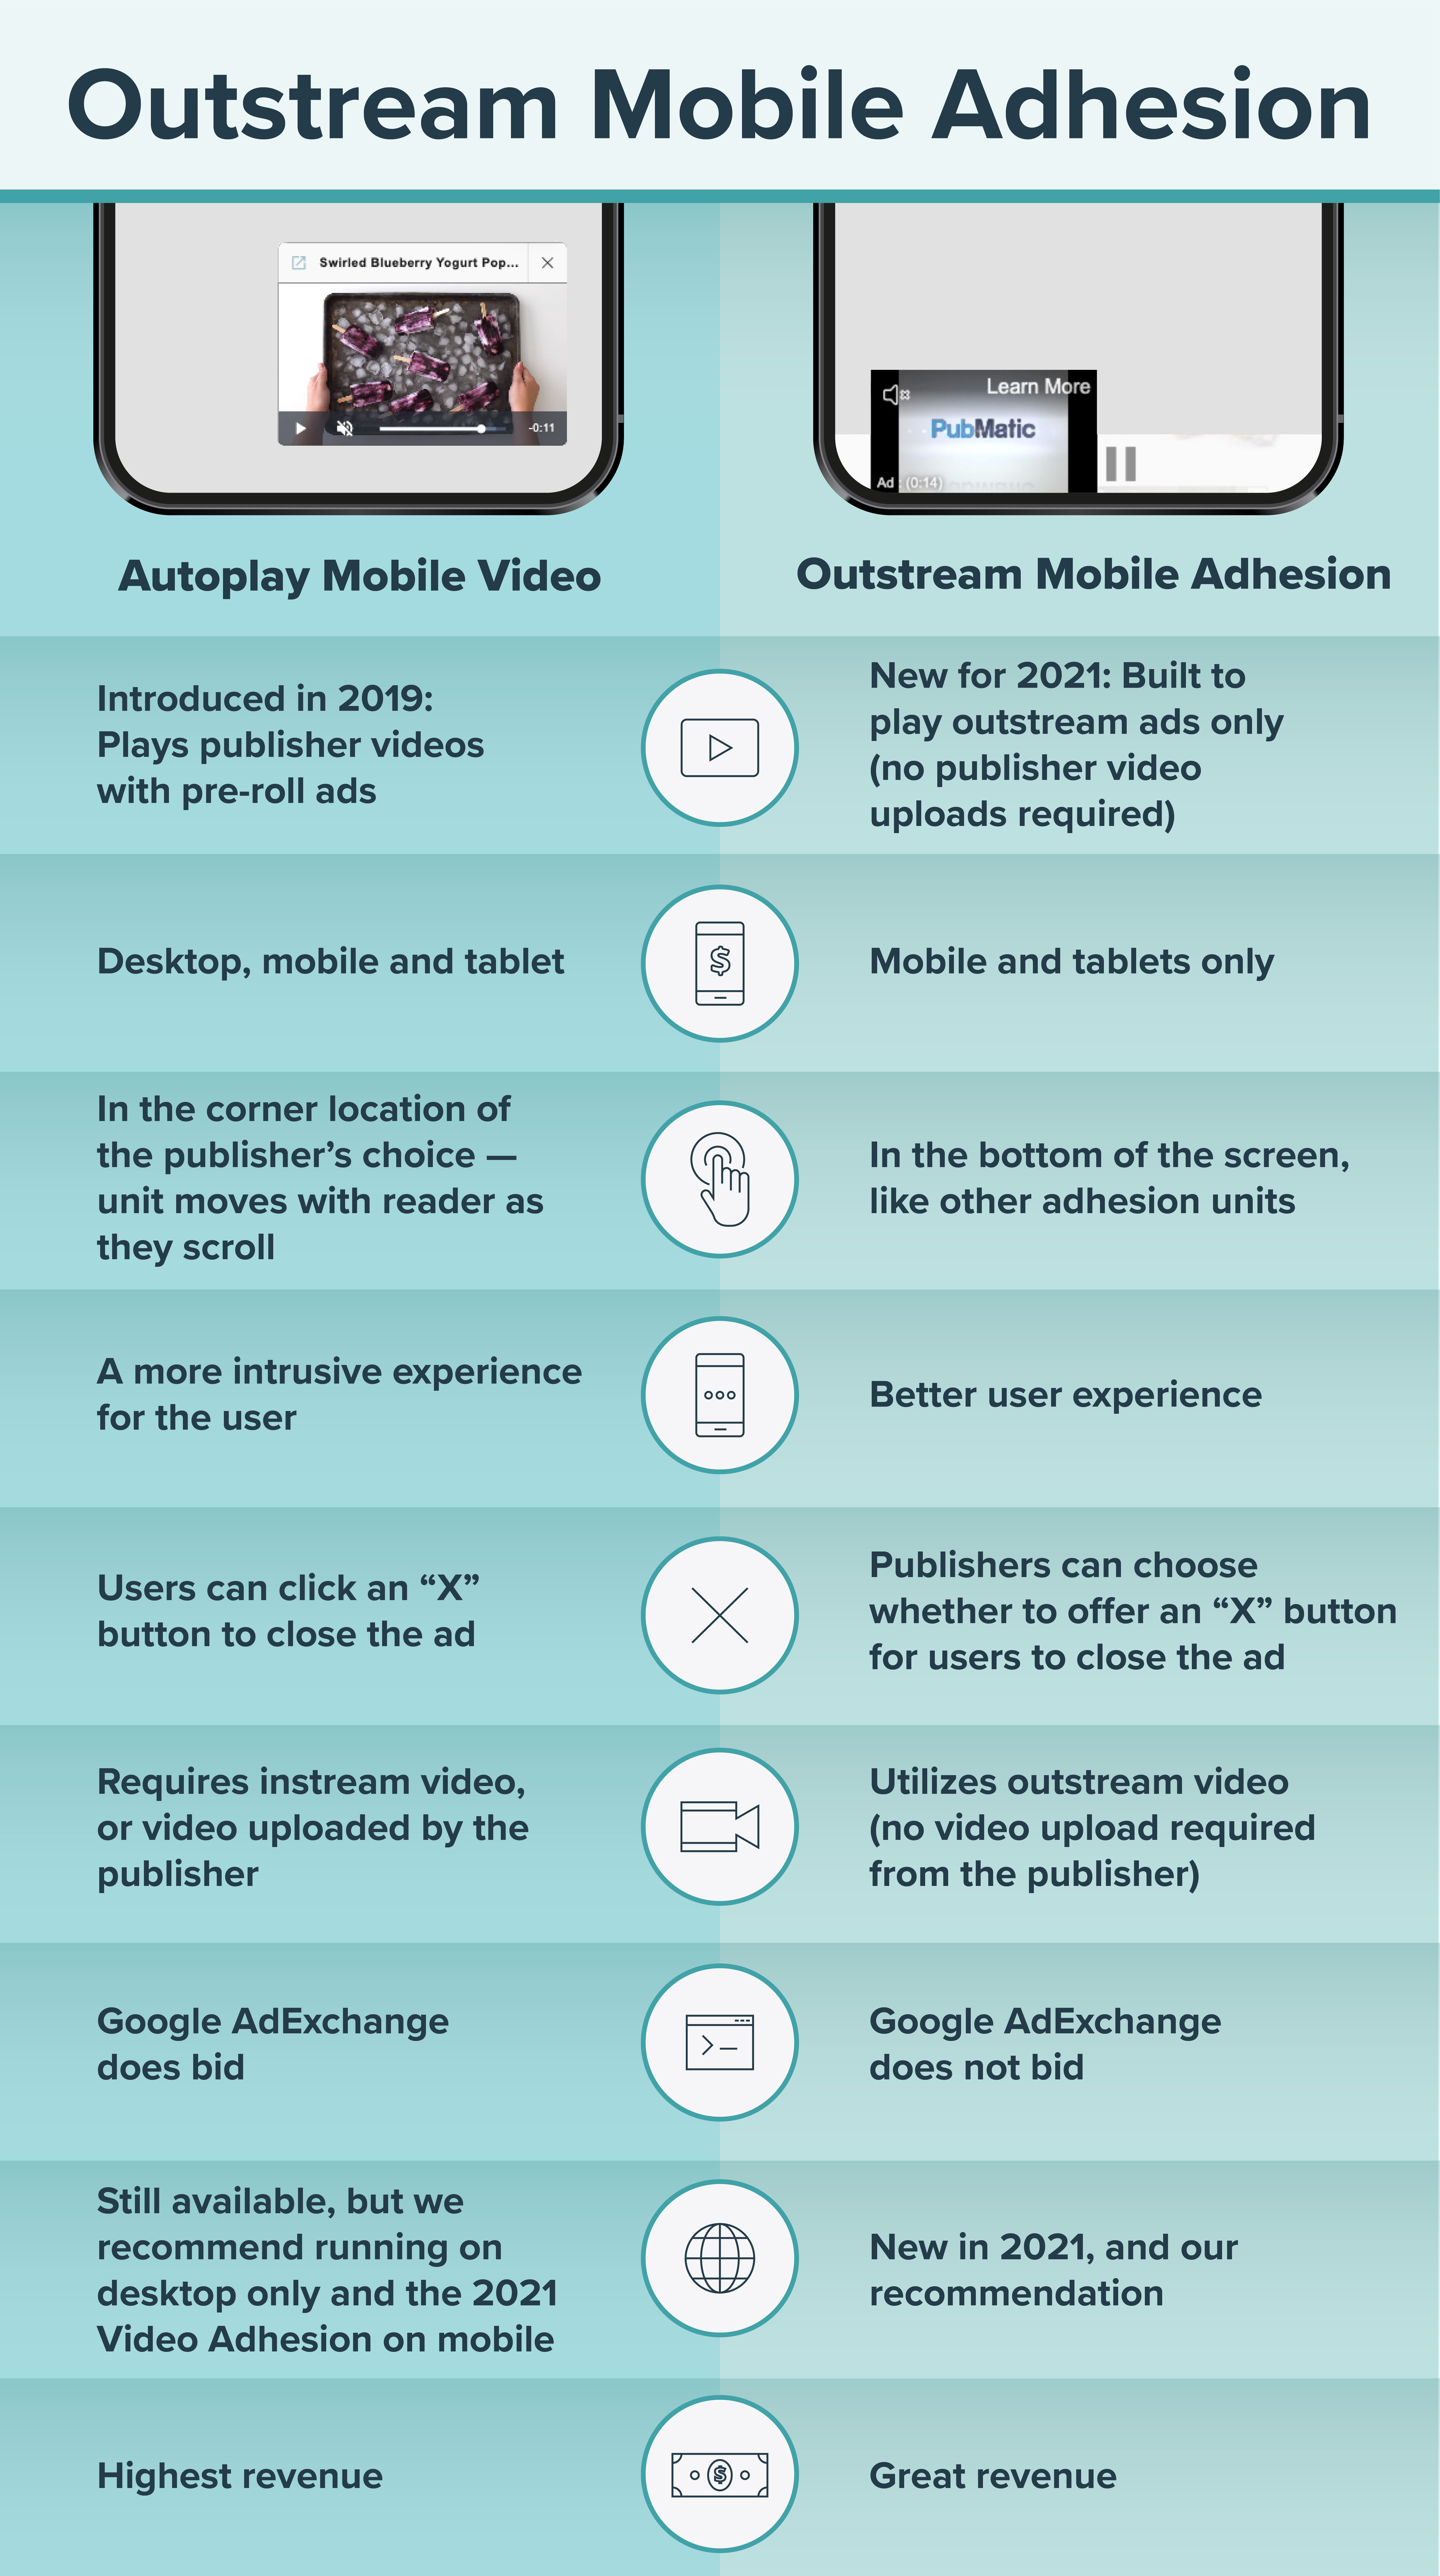 infographic comparing mobile autoplay and oustream adhesion units